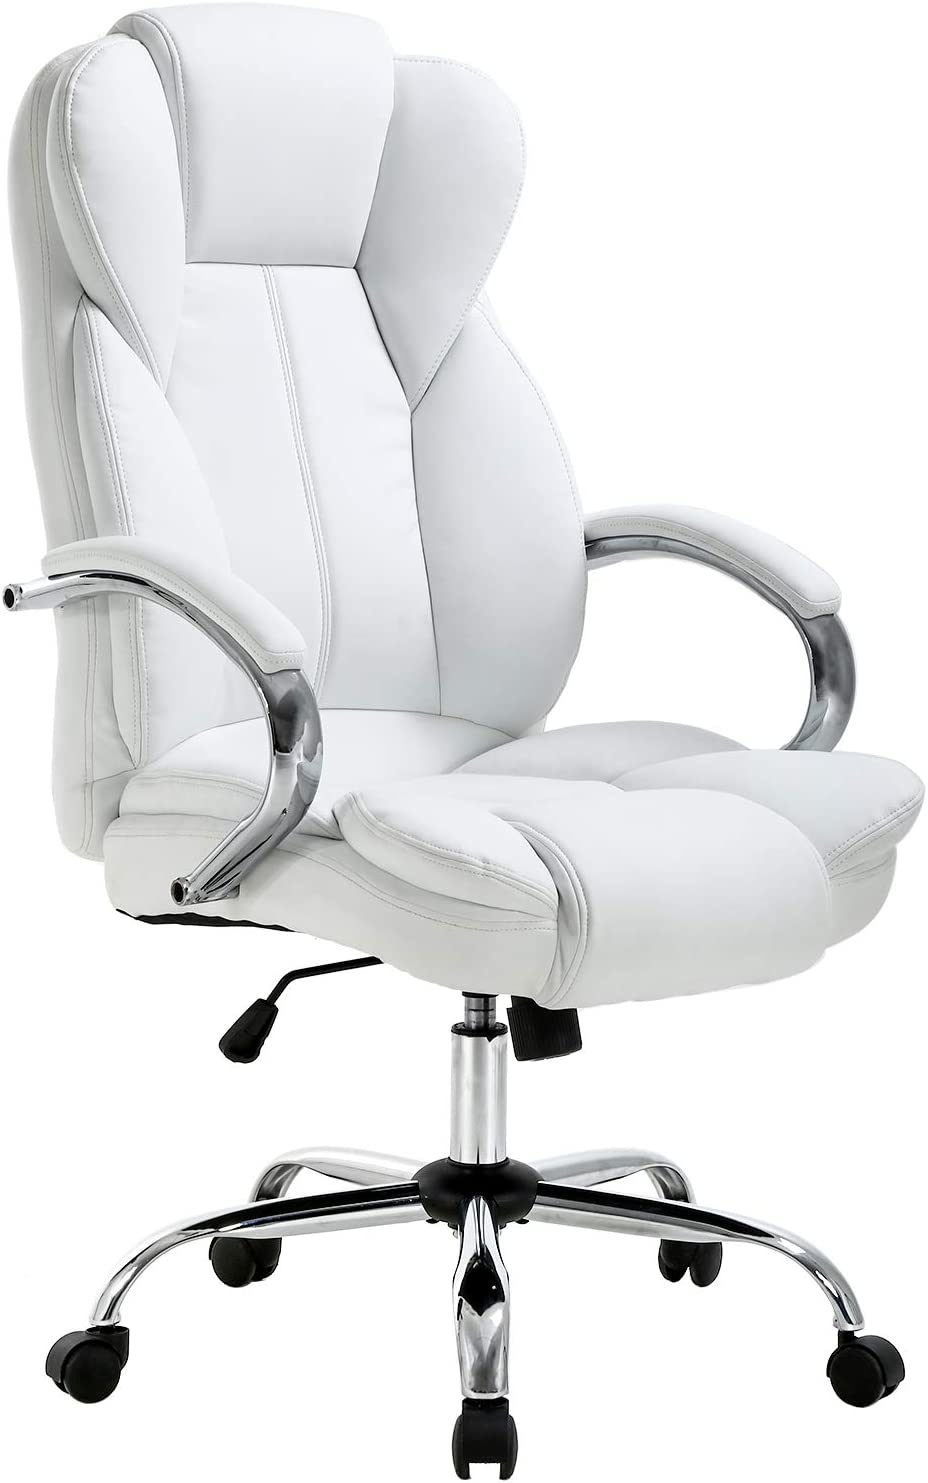 Ergonomic Office Chair Desk Chair PU Leather Computer Chair Executive  Adjustable High Back PU Leather Task Rolling Swivel Chair with Lumbar  Support